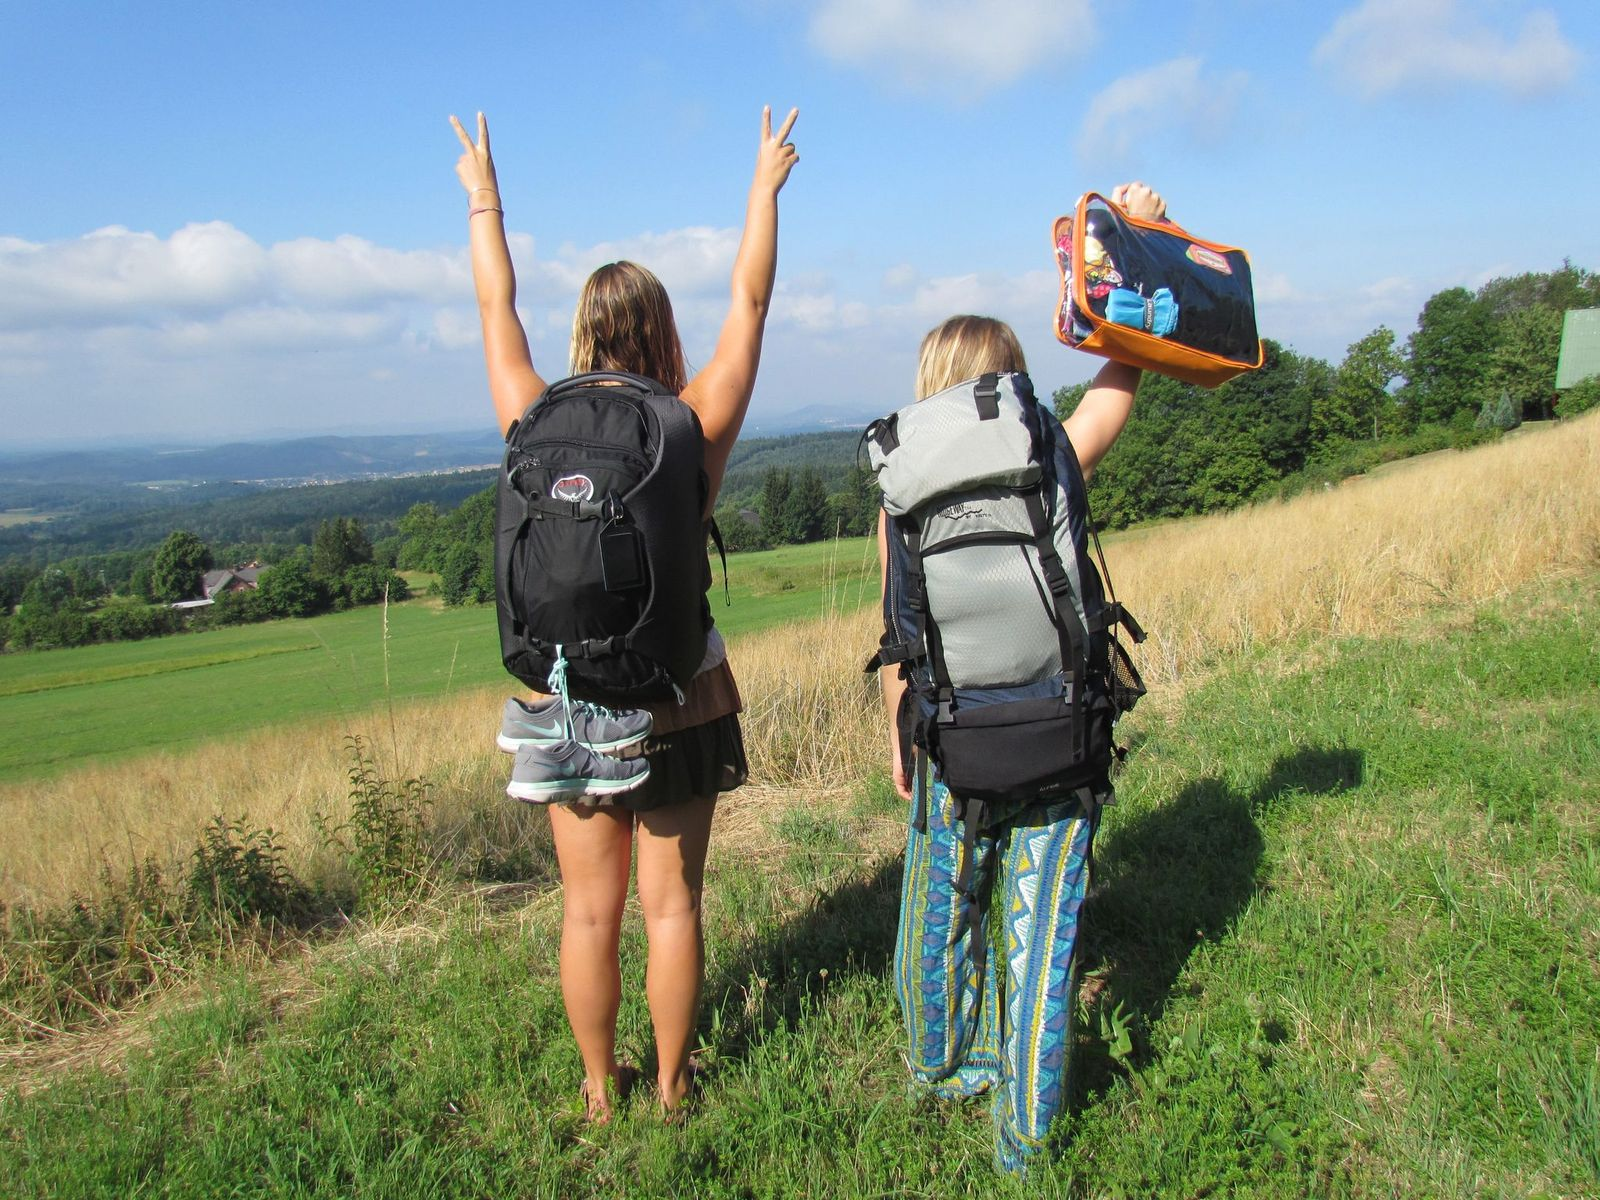 two ladies with backpacks on a hiking trip with a large orange cube